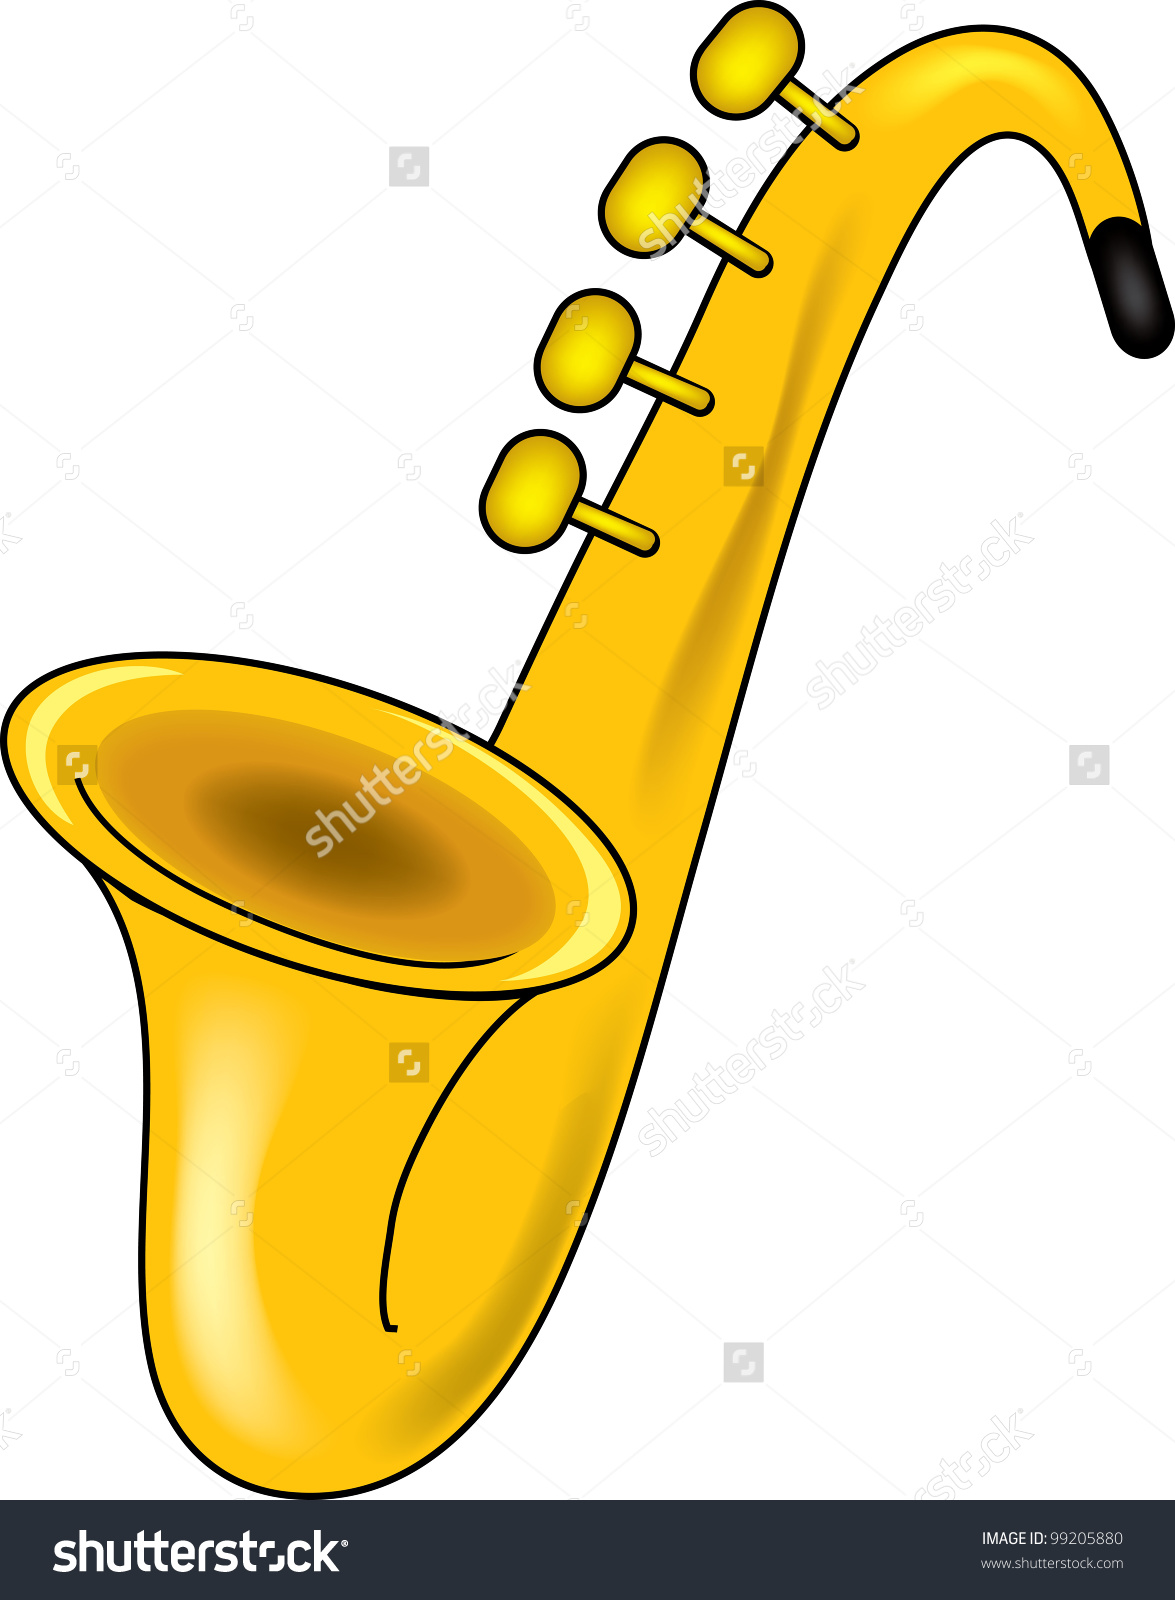 Clip Art Illustration of a saxophone.-Clip Art Illustration of a saxophone.-18